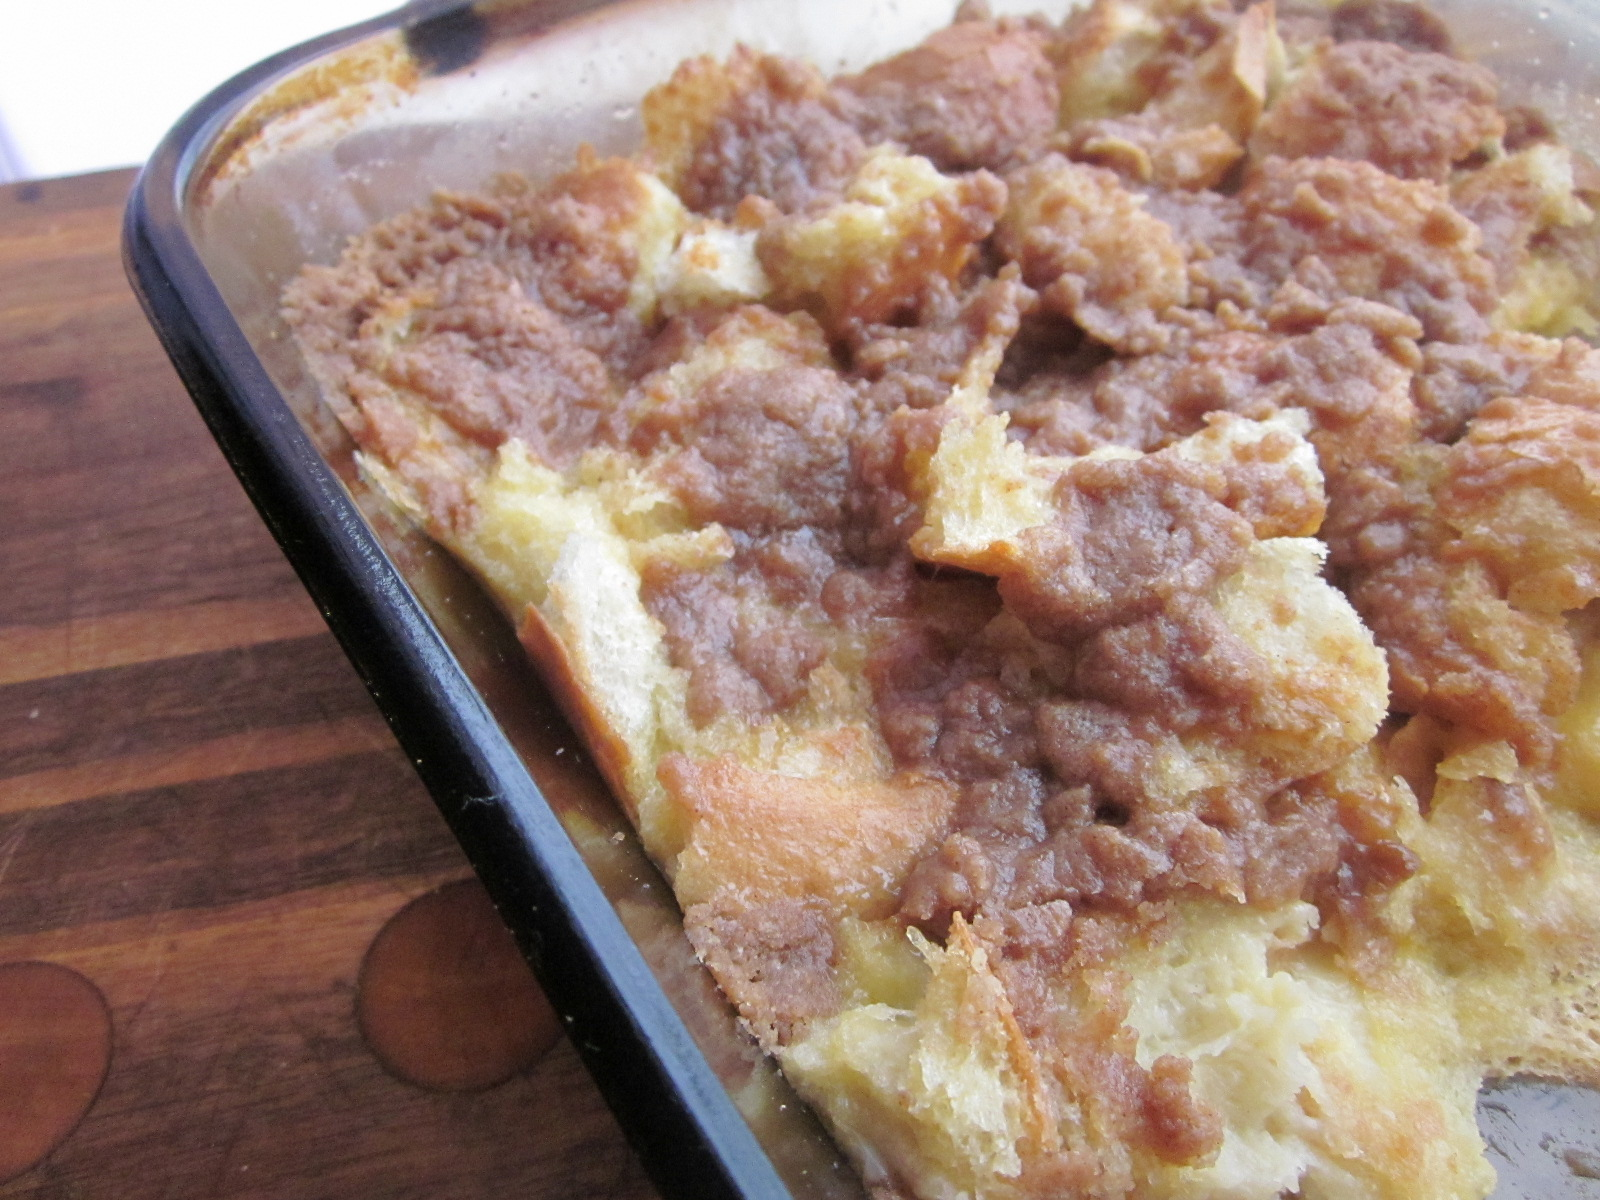 Sweet Luvin' In The Kitchen: Cinnamon Baked French Toast